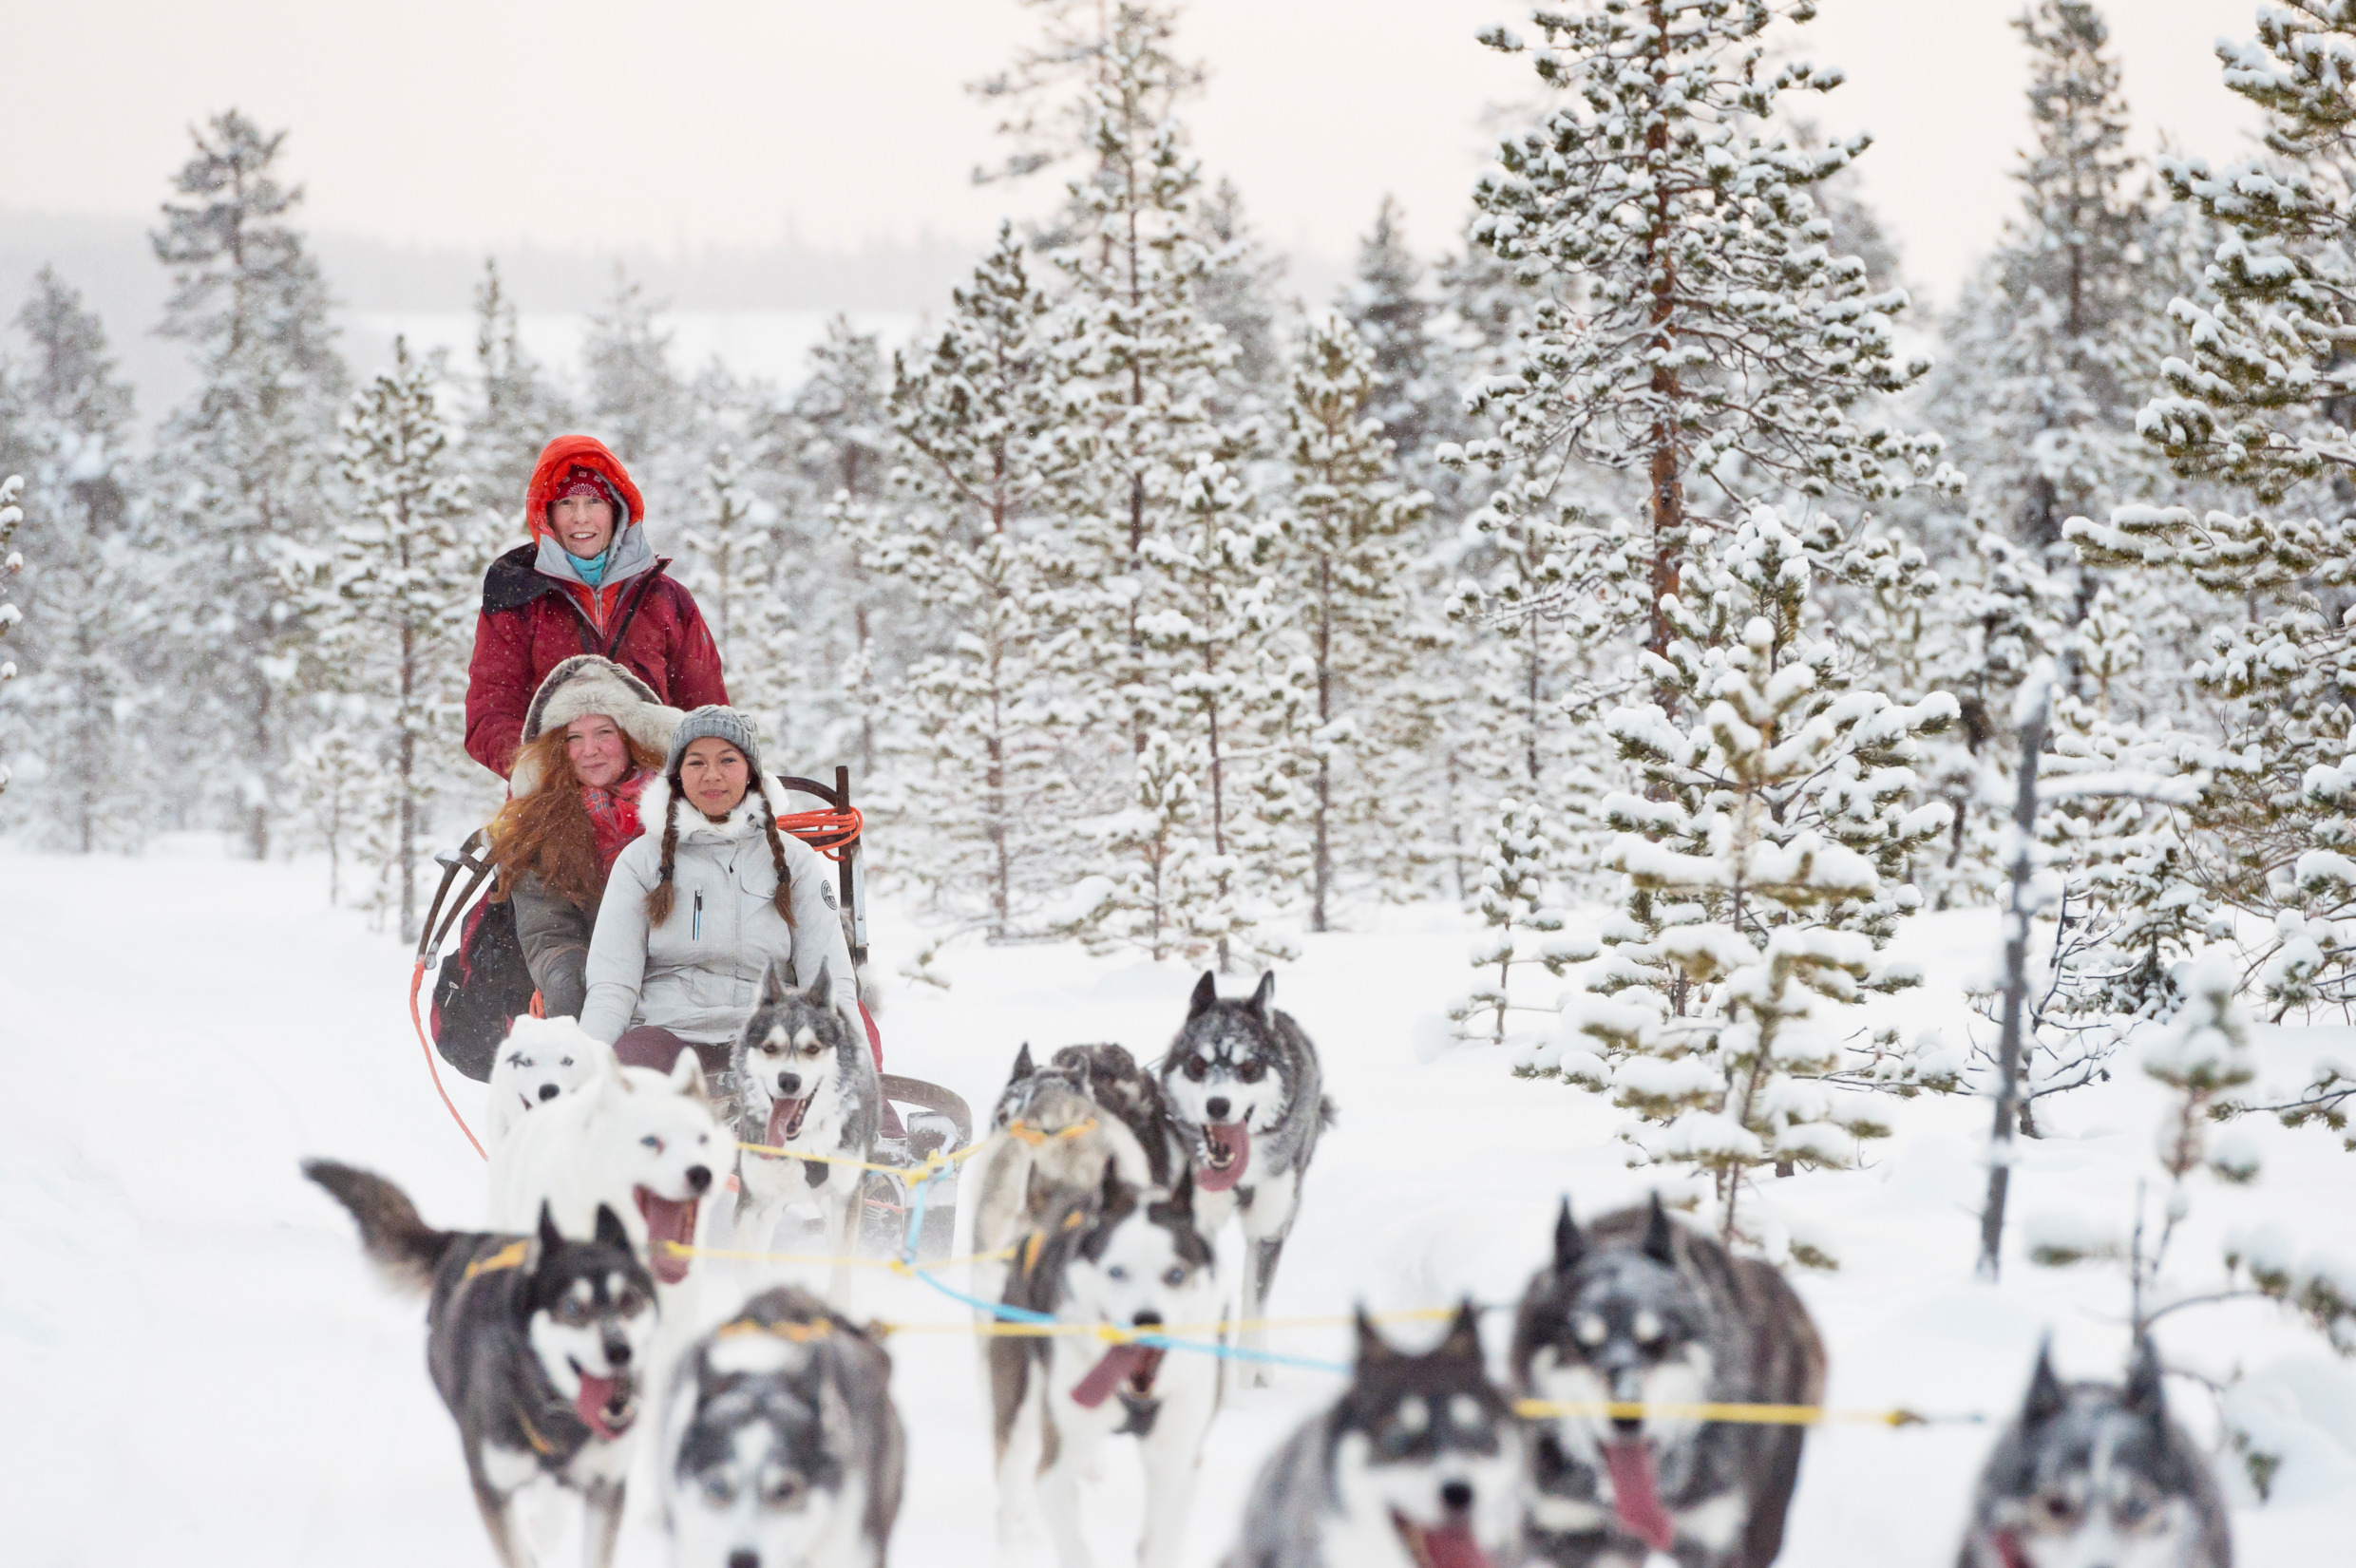 Dog sledding in Jokkmokk. Photo: Anna Öhlund/imagebank.sweden.se